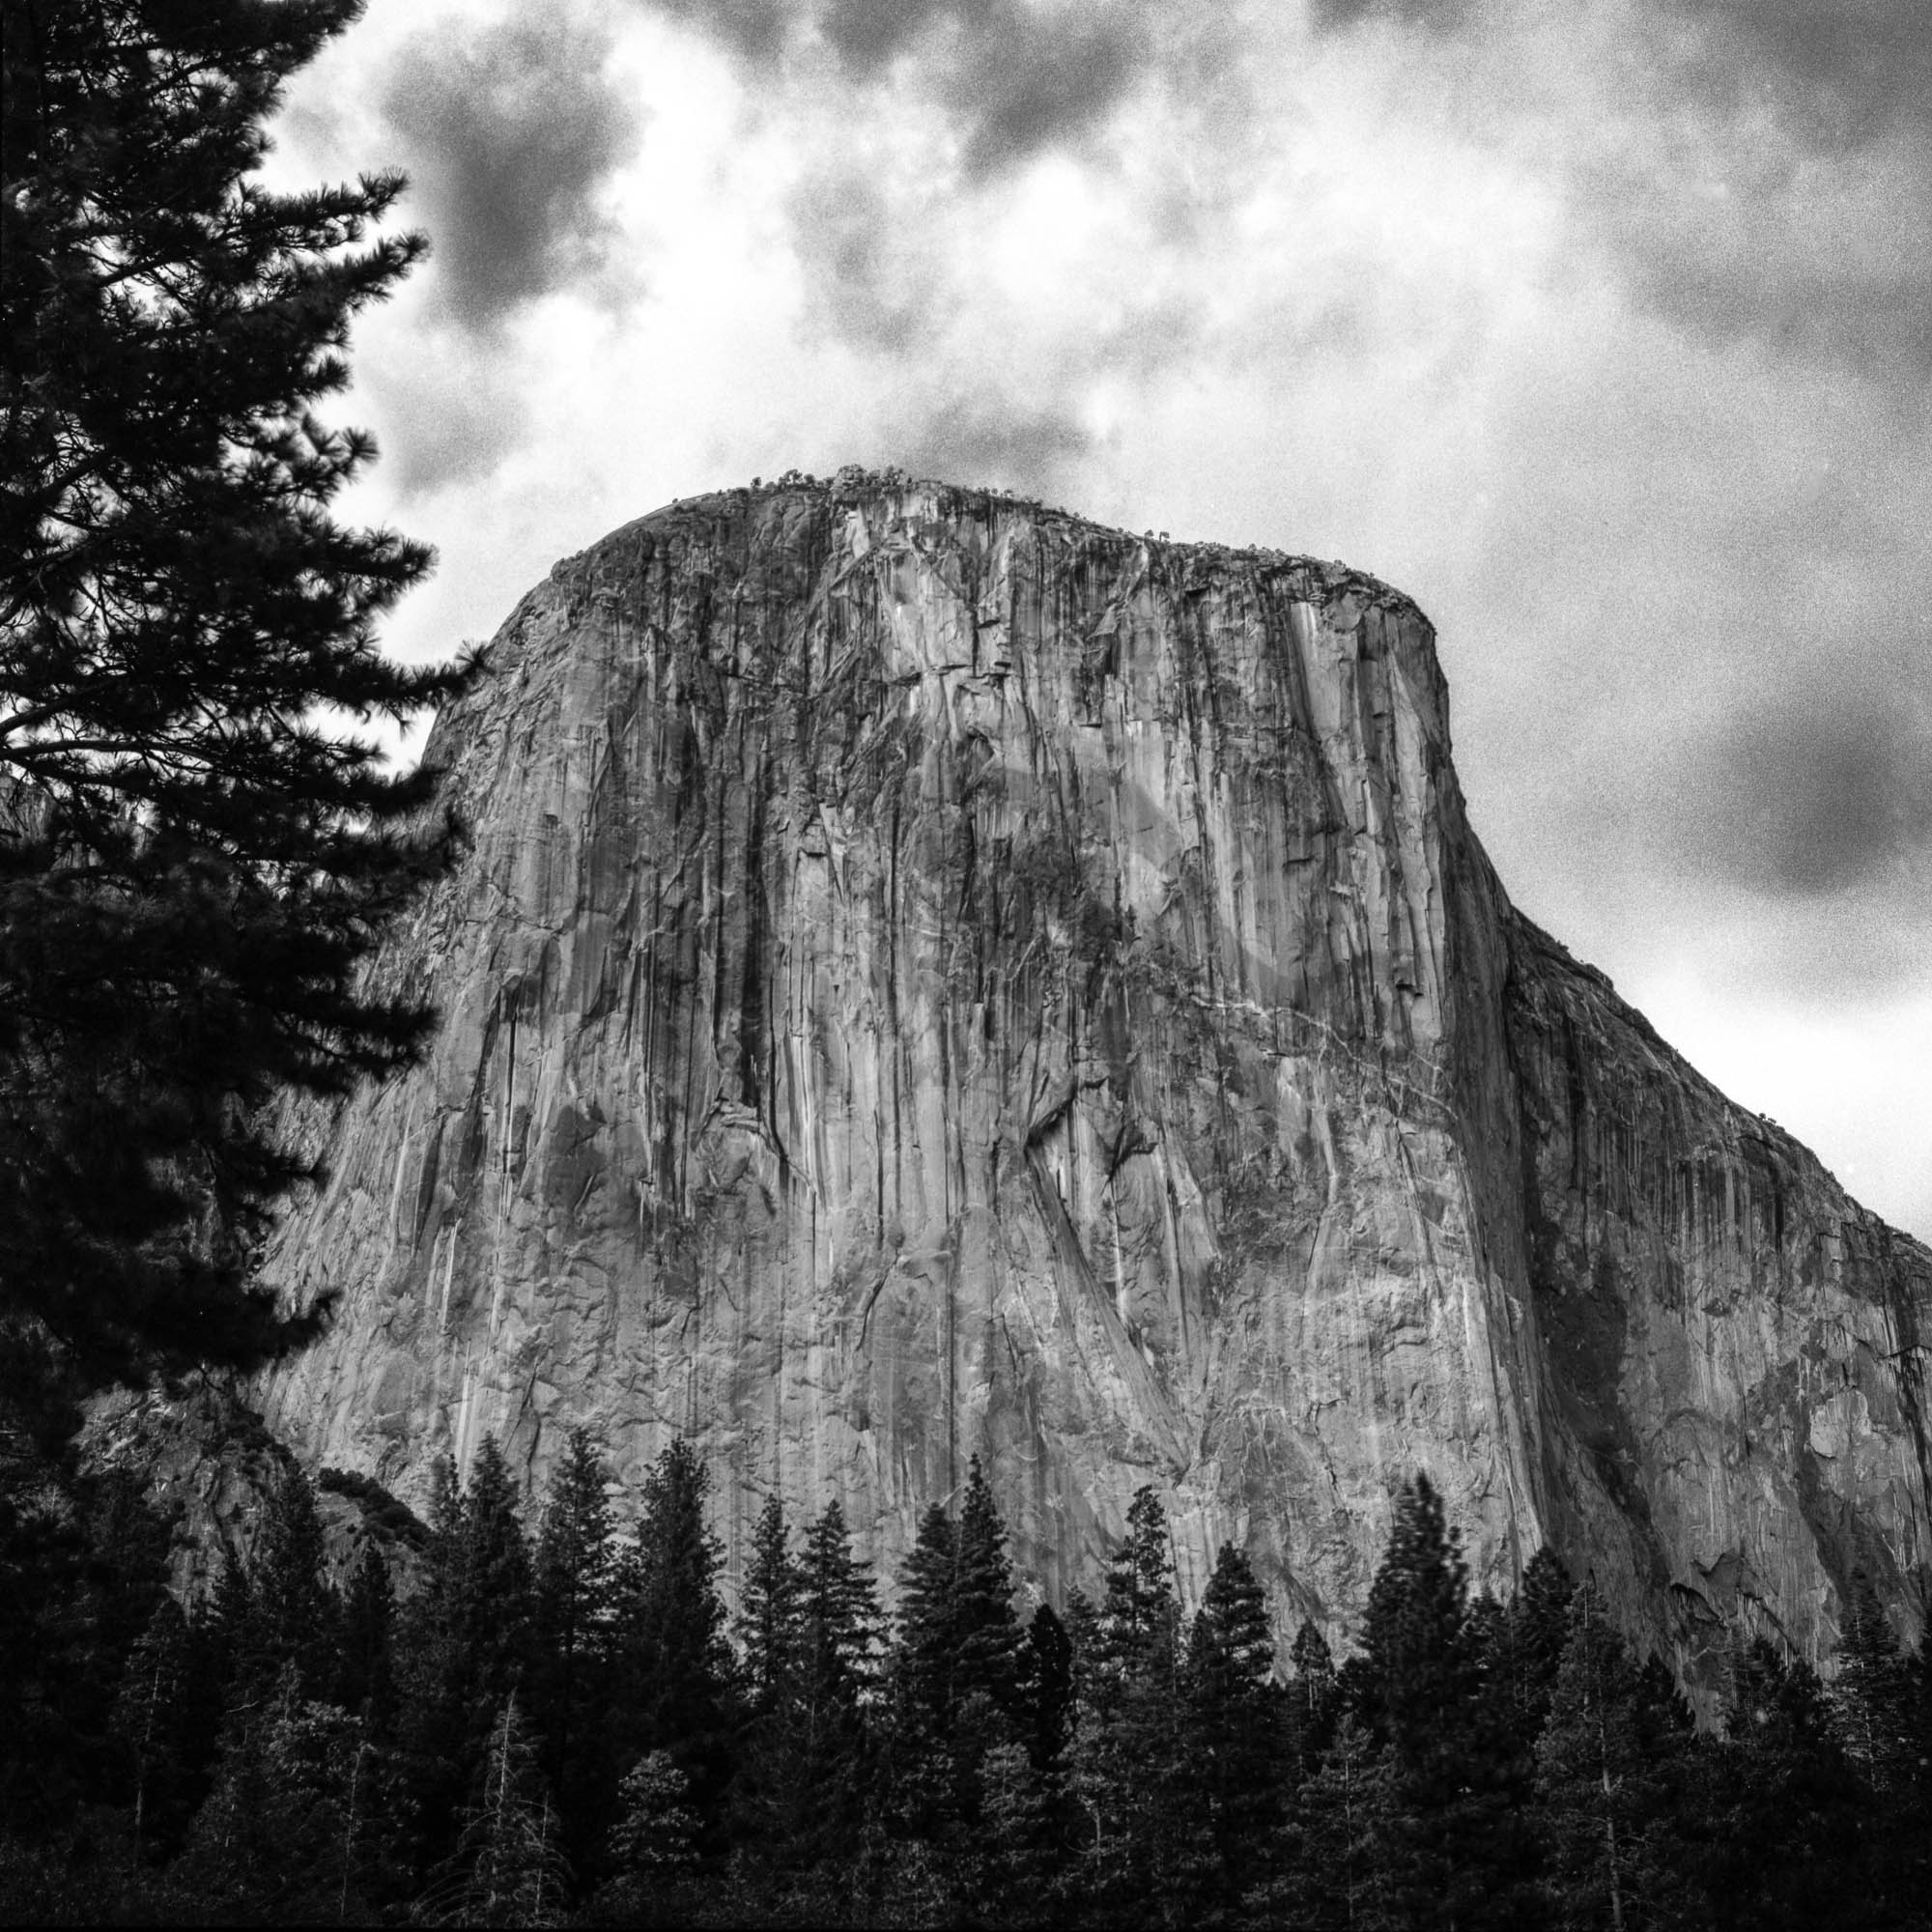 El Capitan, Photographed on Tri-X Film.